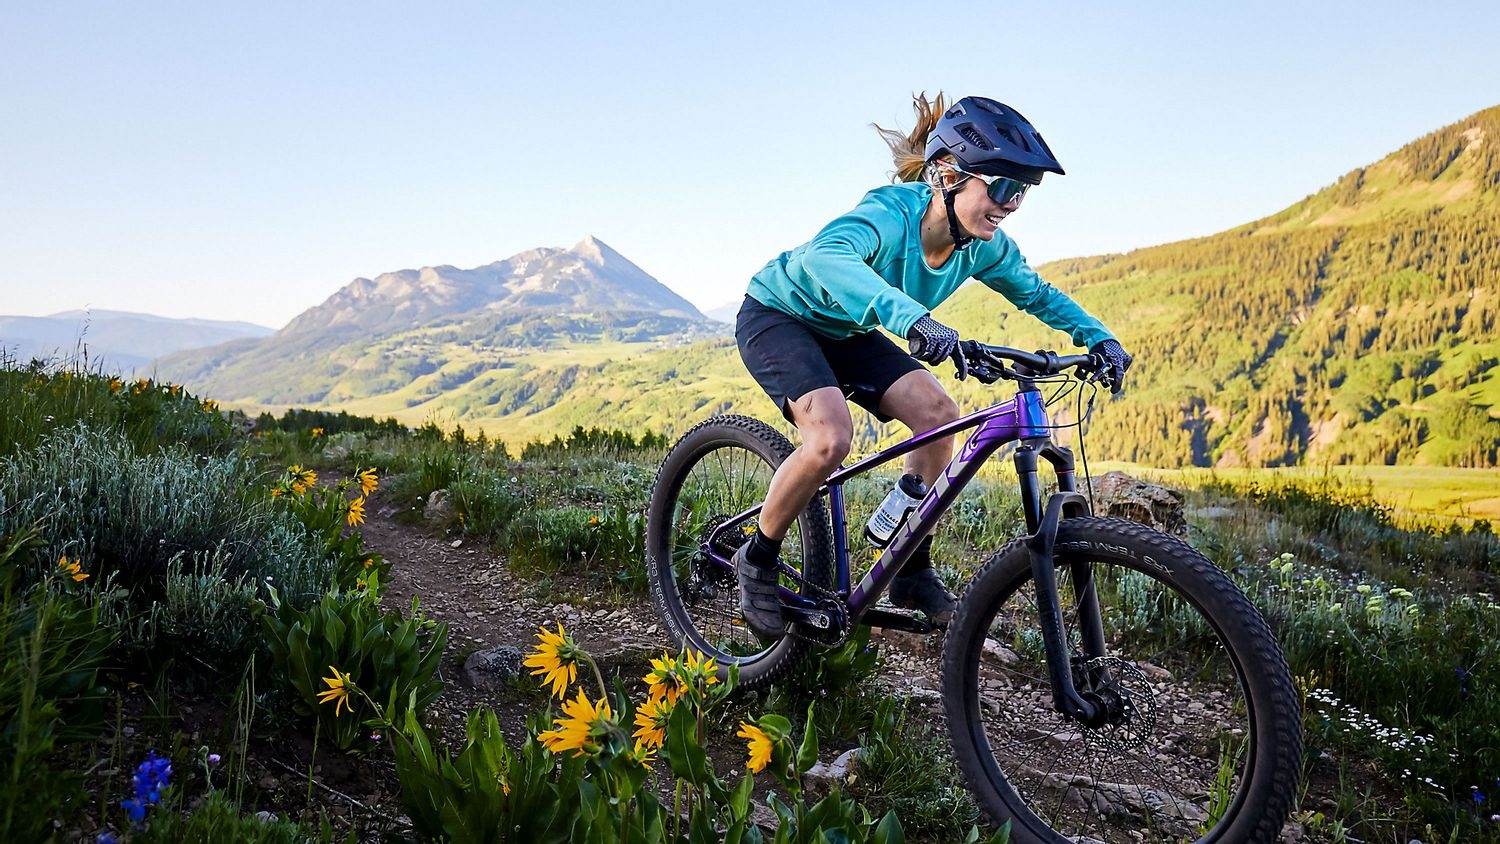 DR Sports | Life's a Climb with Great View